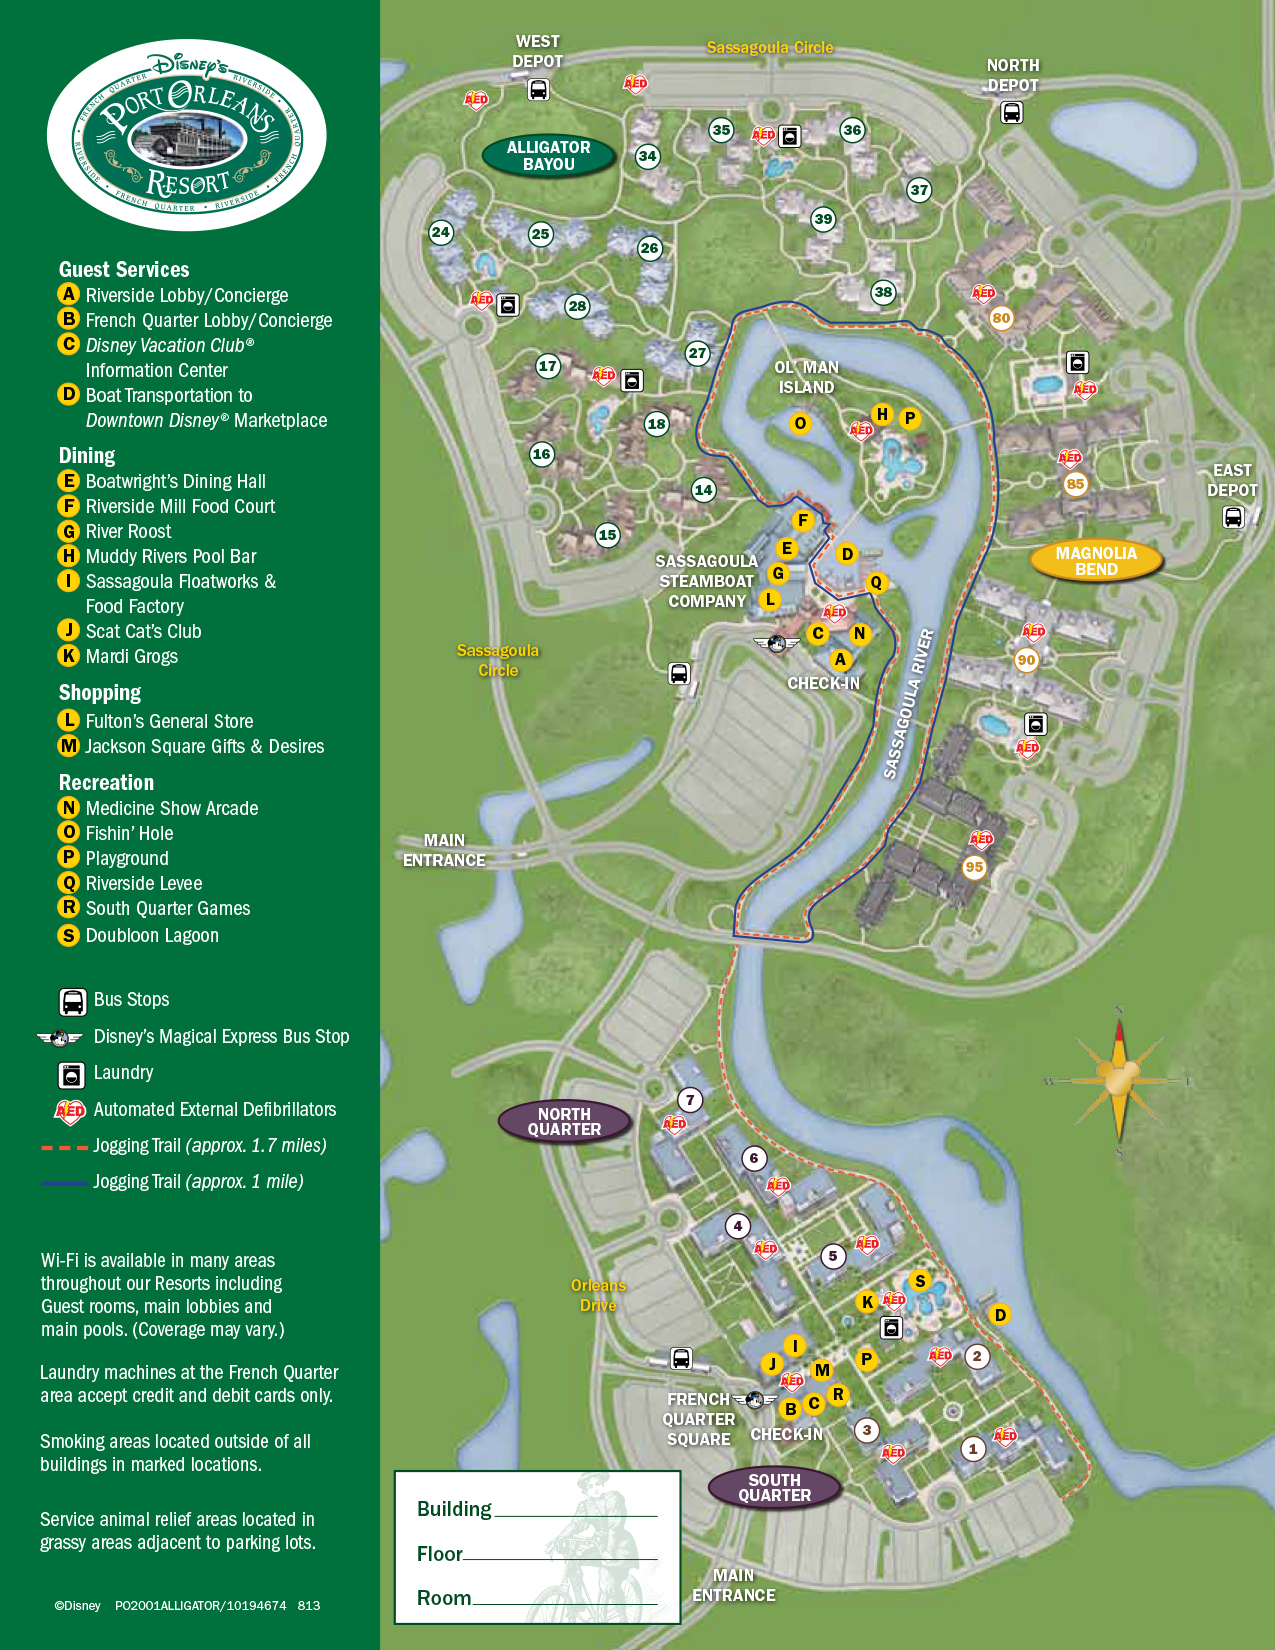 Port Orleans Riverside Resort Map | KennythePirate.com on